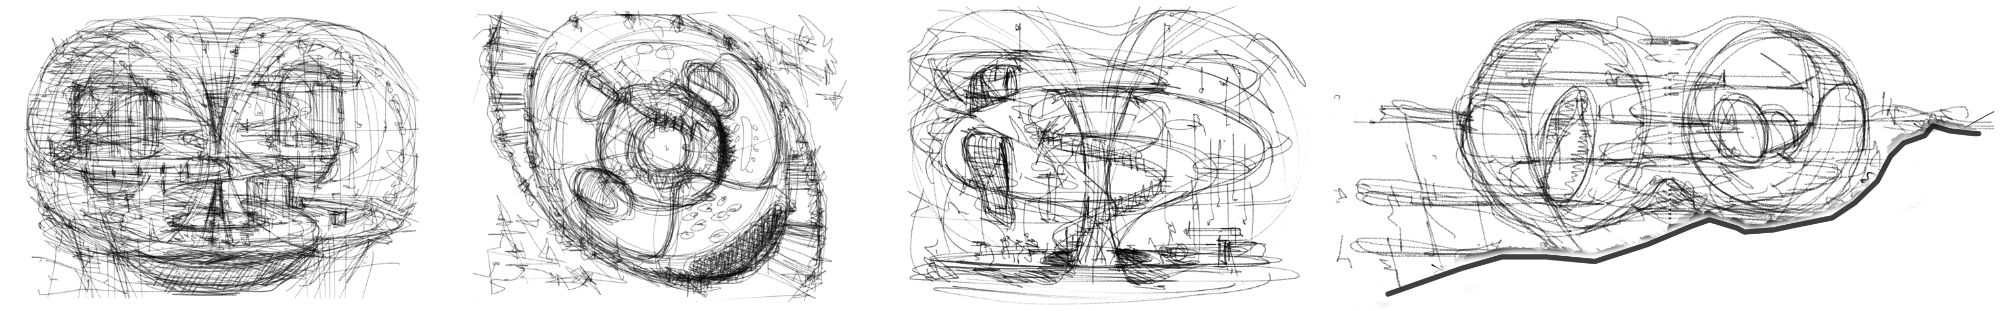 Richard Conner Architect Artist Toroidal Flow House Yin Yang Studio Concept Sketches 2000px 80PC.jpg